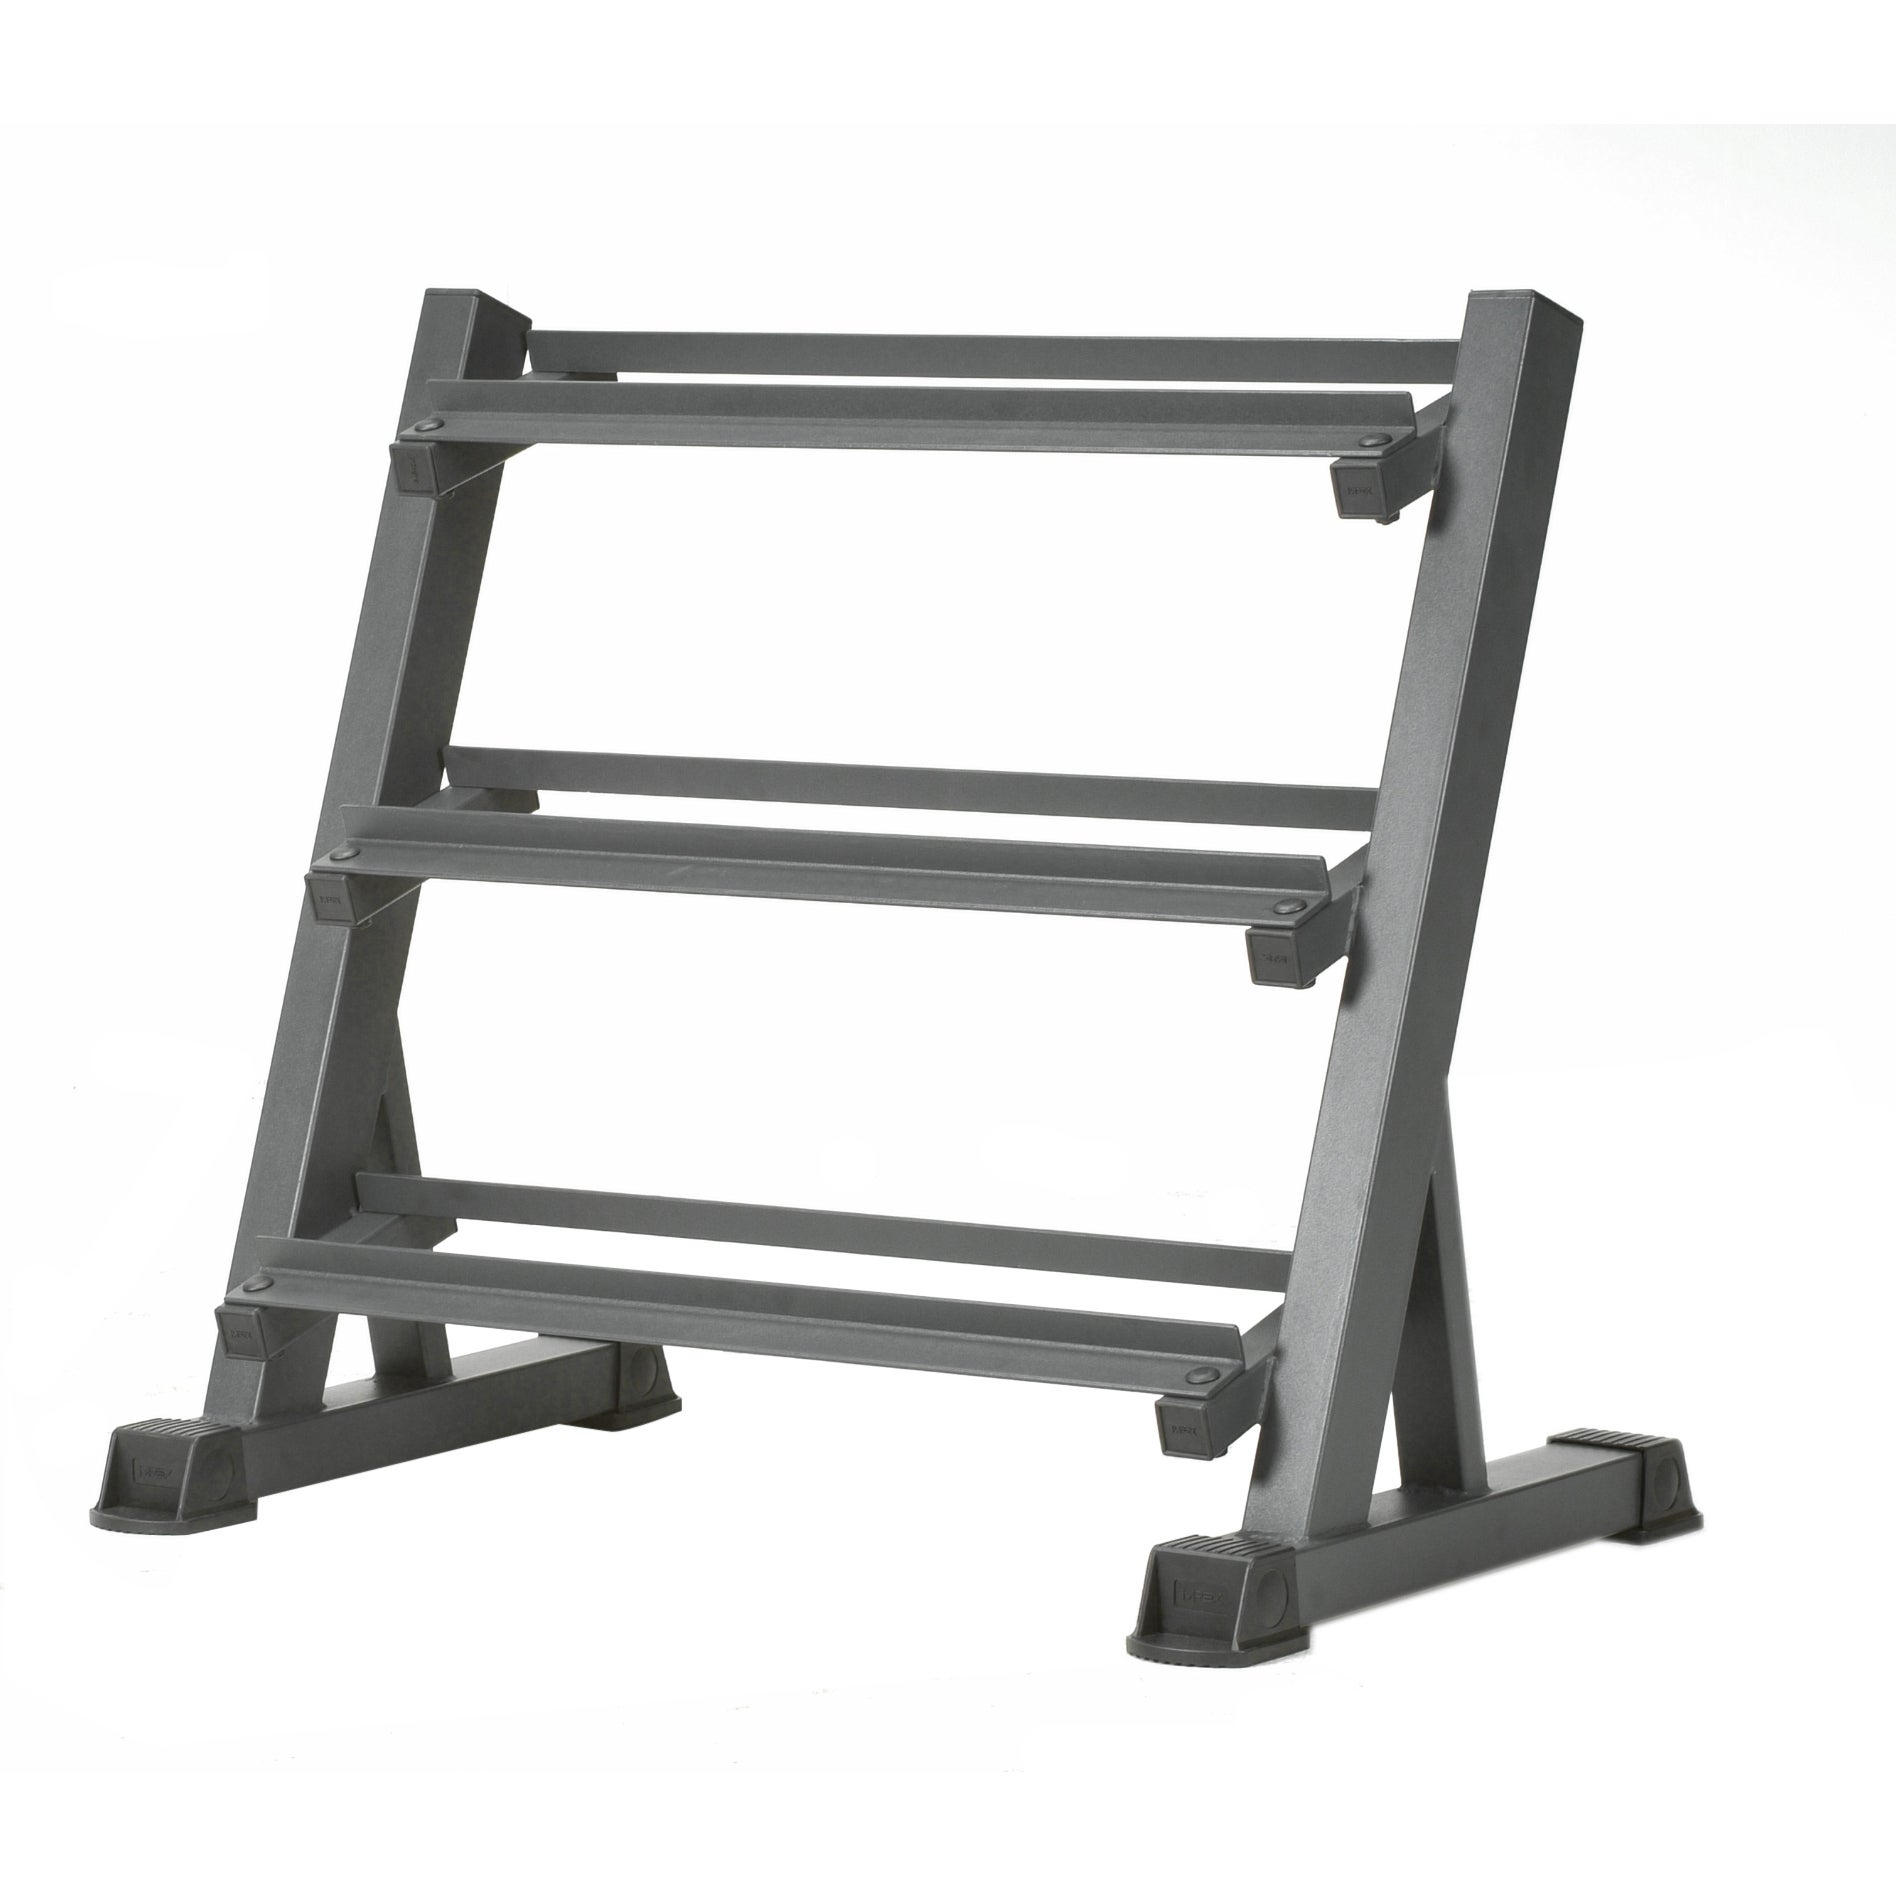 IMPEX Marcy 3-tier Dumbbell Rack (Marcy 3 Tier Dumbdell R...